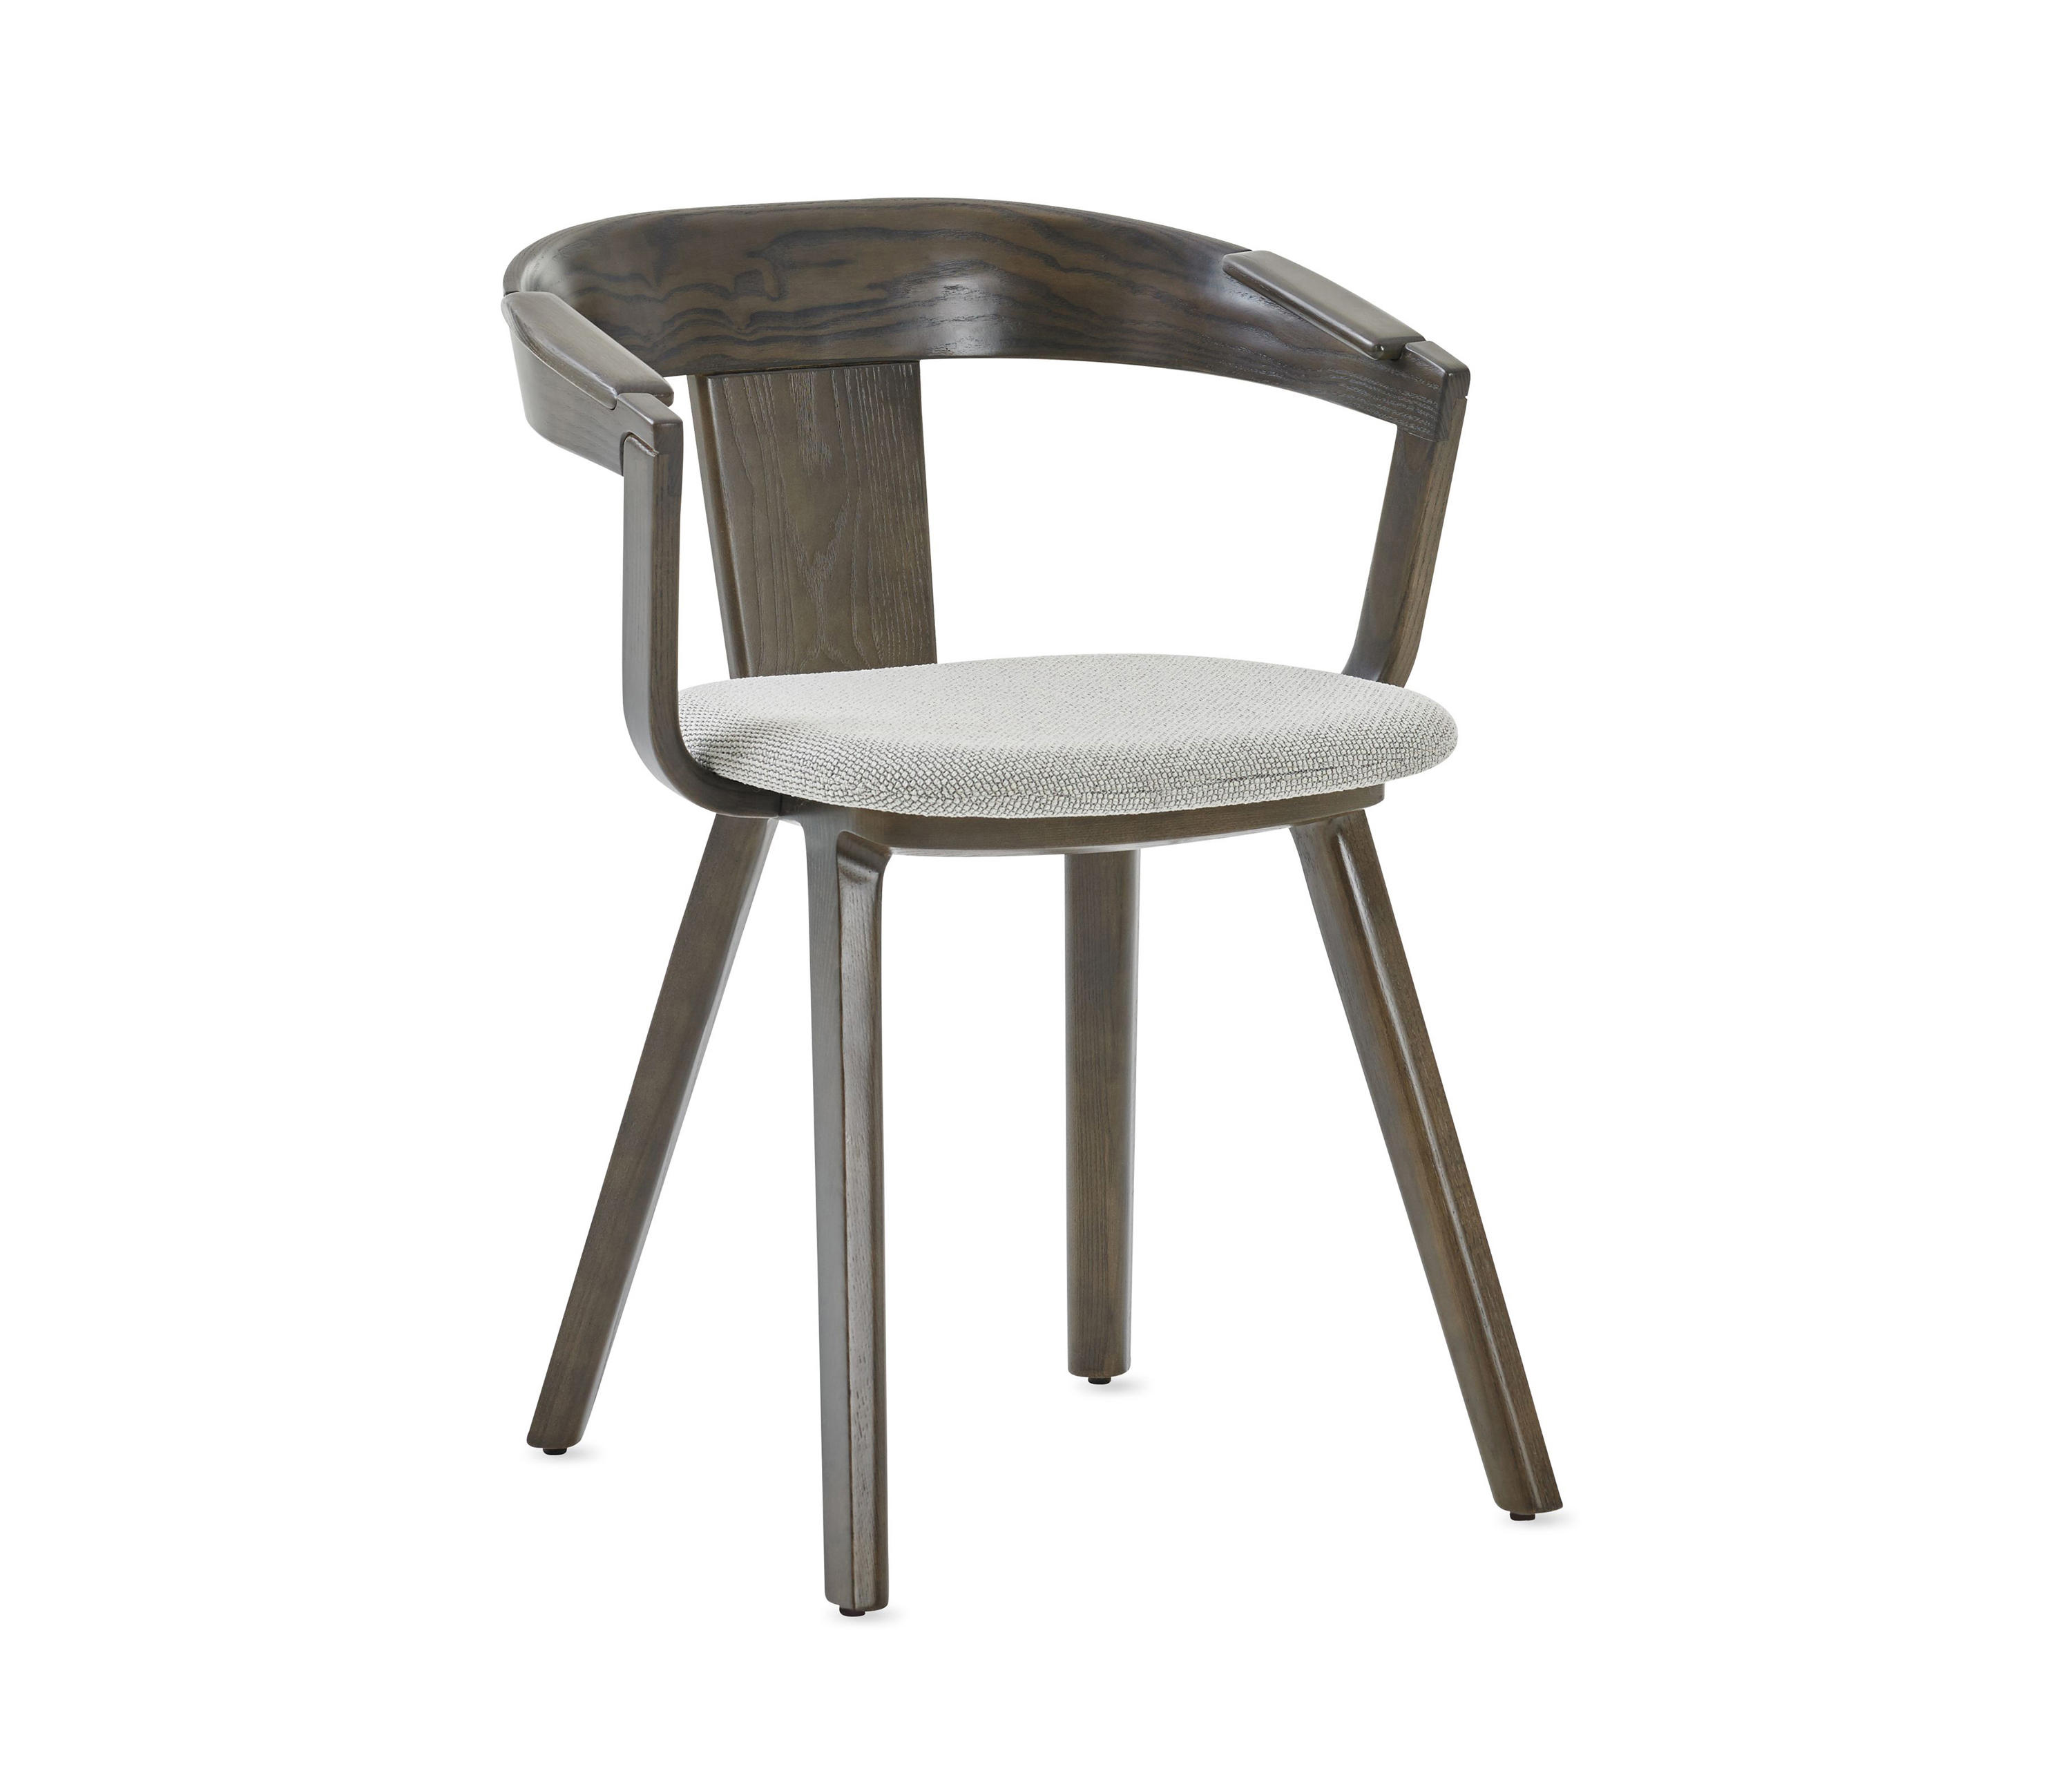 chair with arms swing stand juntura guest chairs from studio tk architonic by